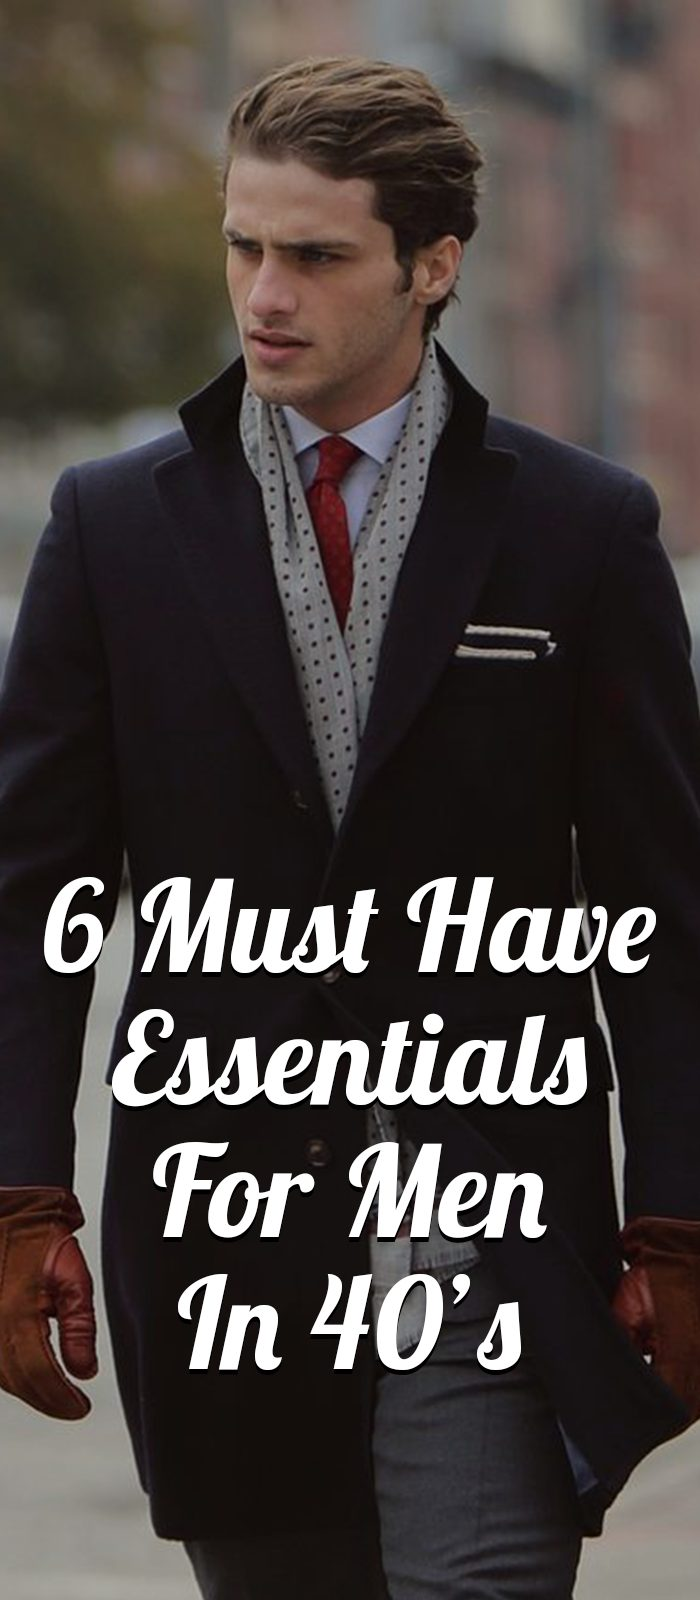 6 Must Have Essentials For Men In 40's